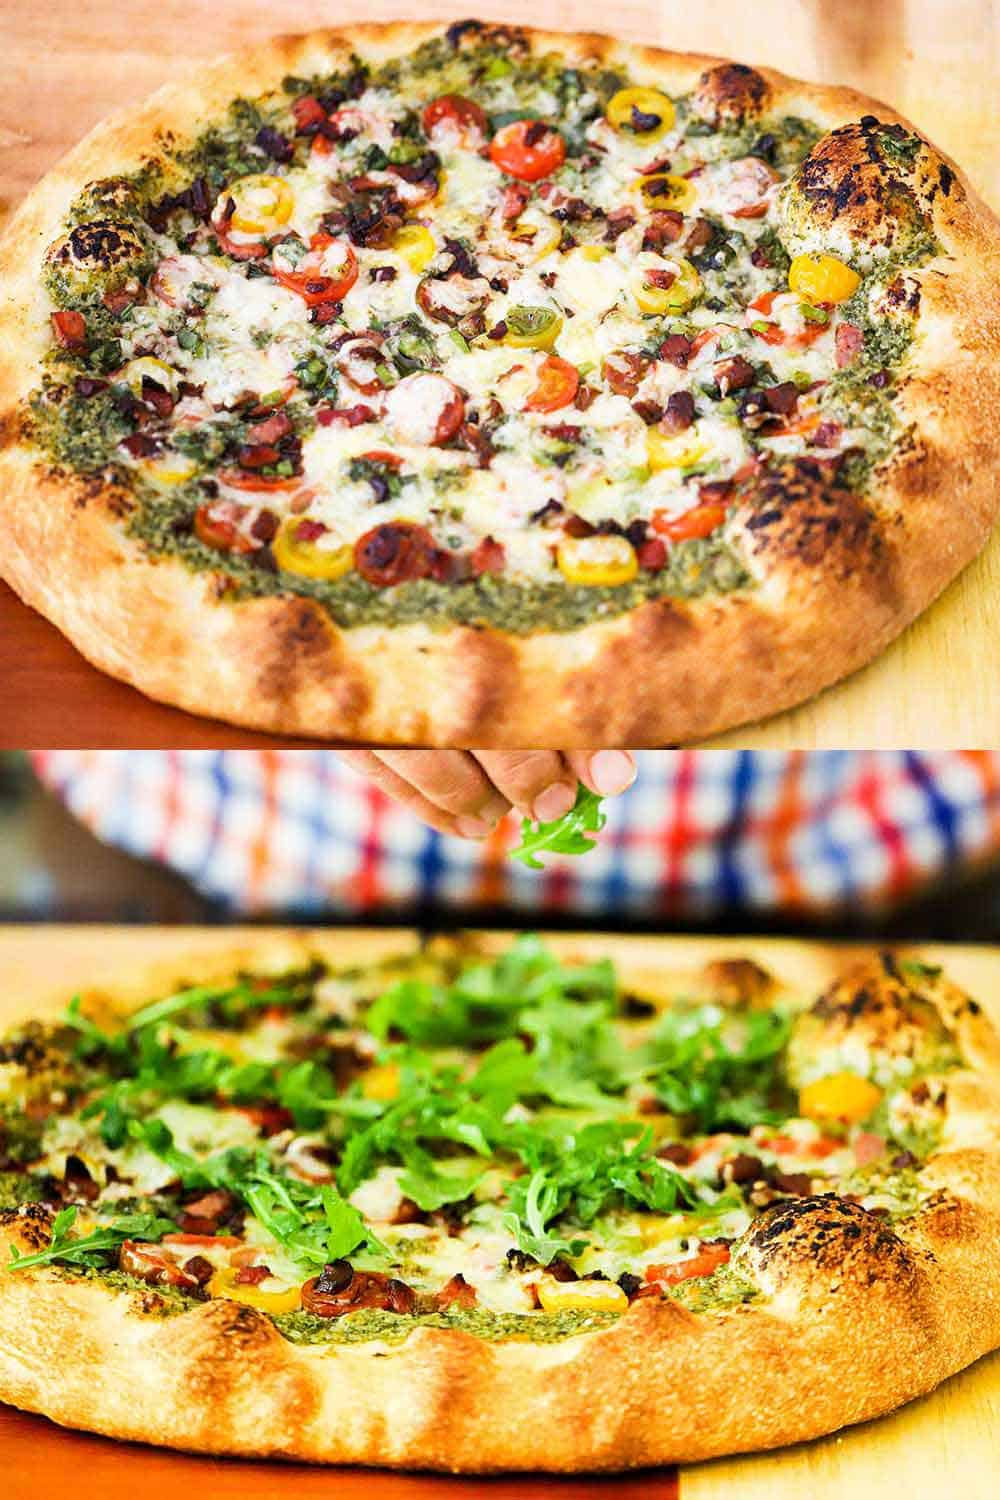 Two stacked images with the top being a freshly baked BLT pizza on a wooden cutting board and the bottom is the same pizza with a hand sprinkling arugula on top.